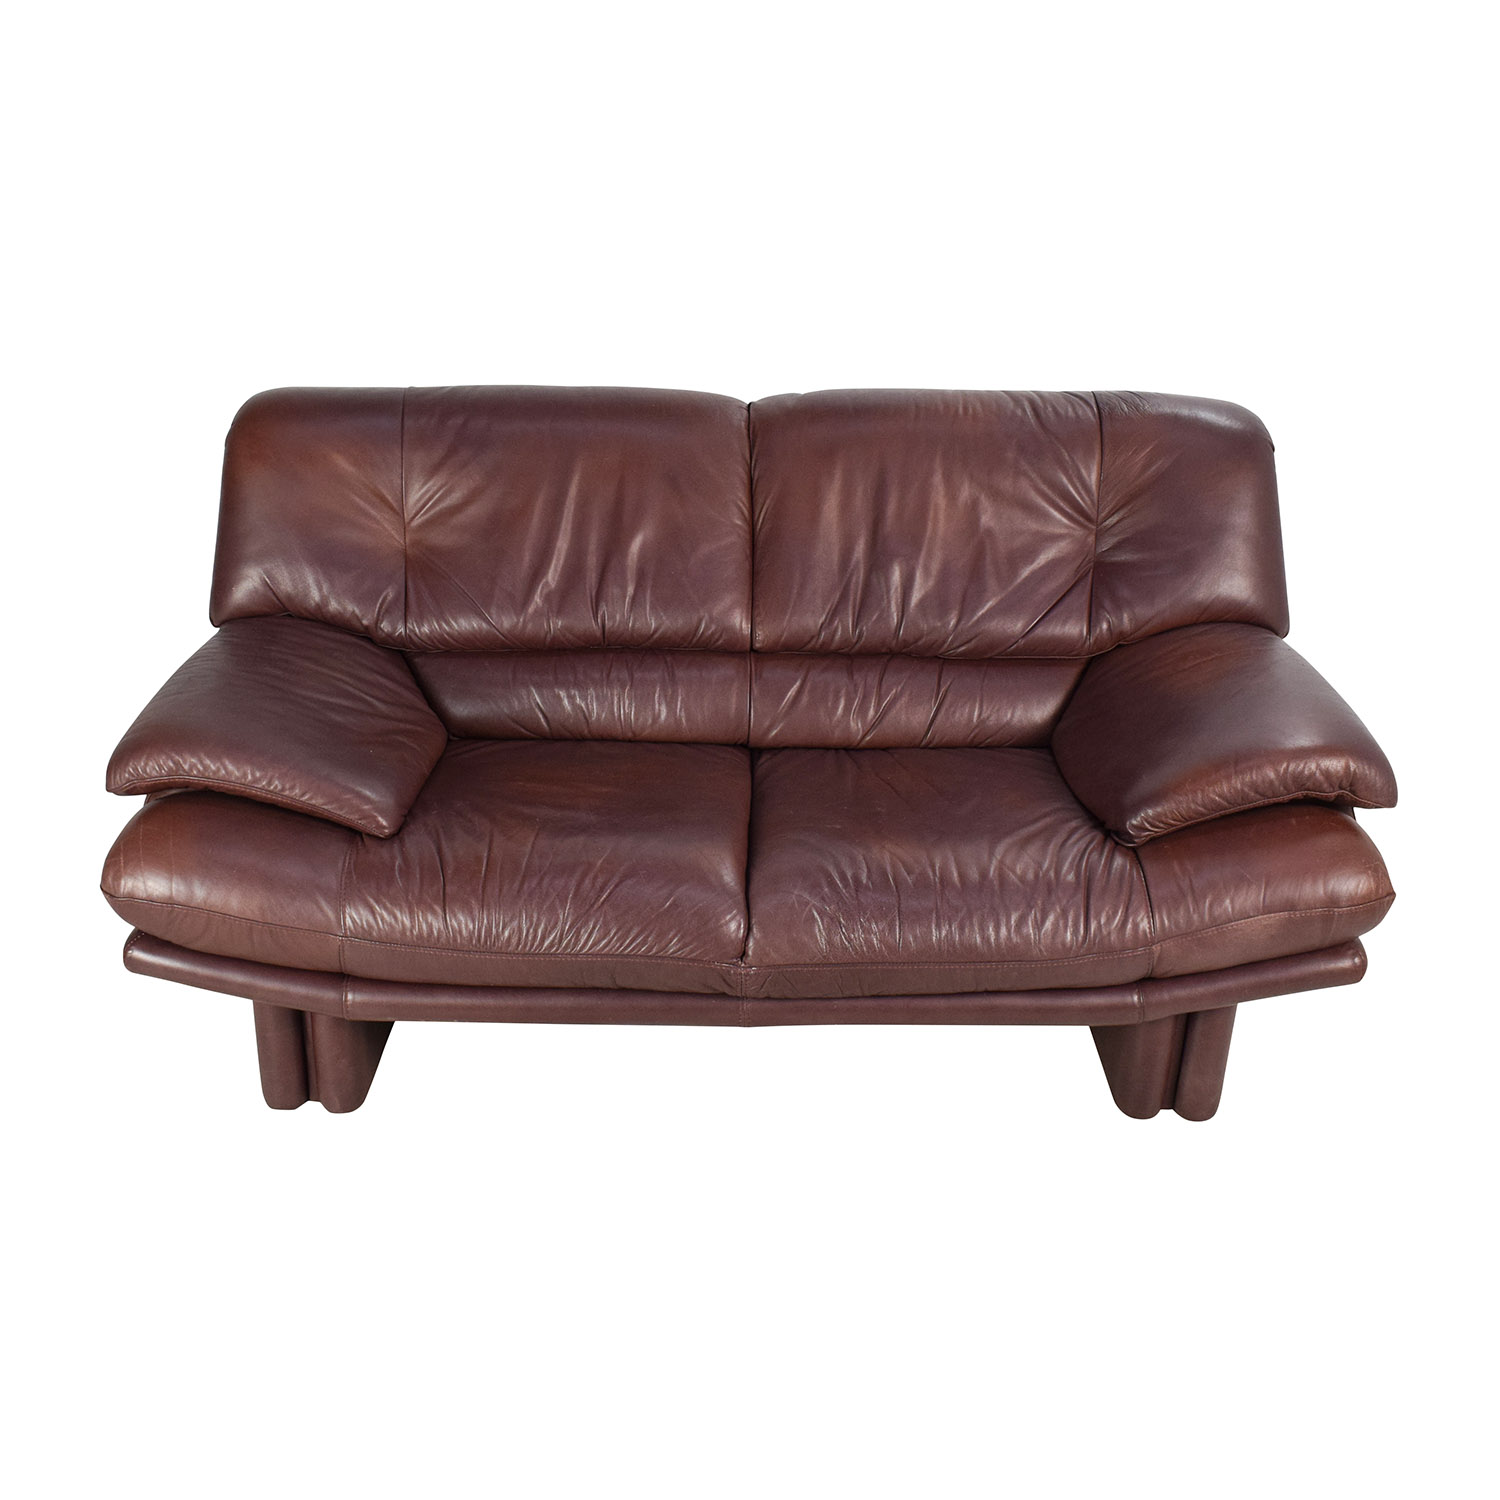 67% OFF - Maurice Villency Maurice Villency Brown Leather Sofa / Sofas